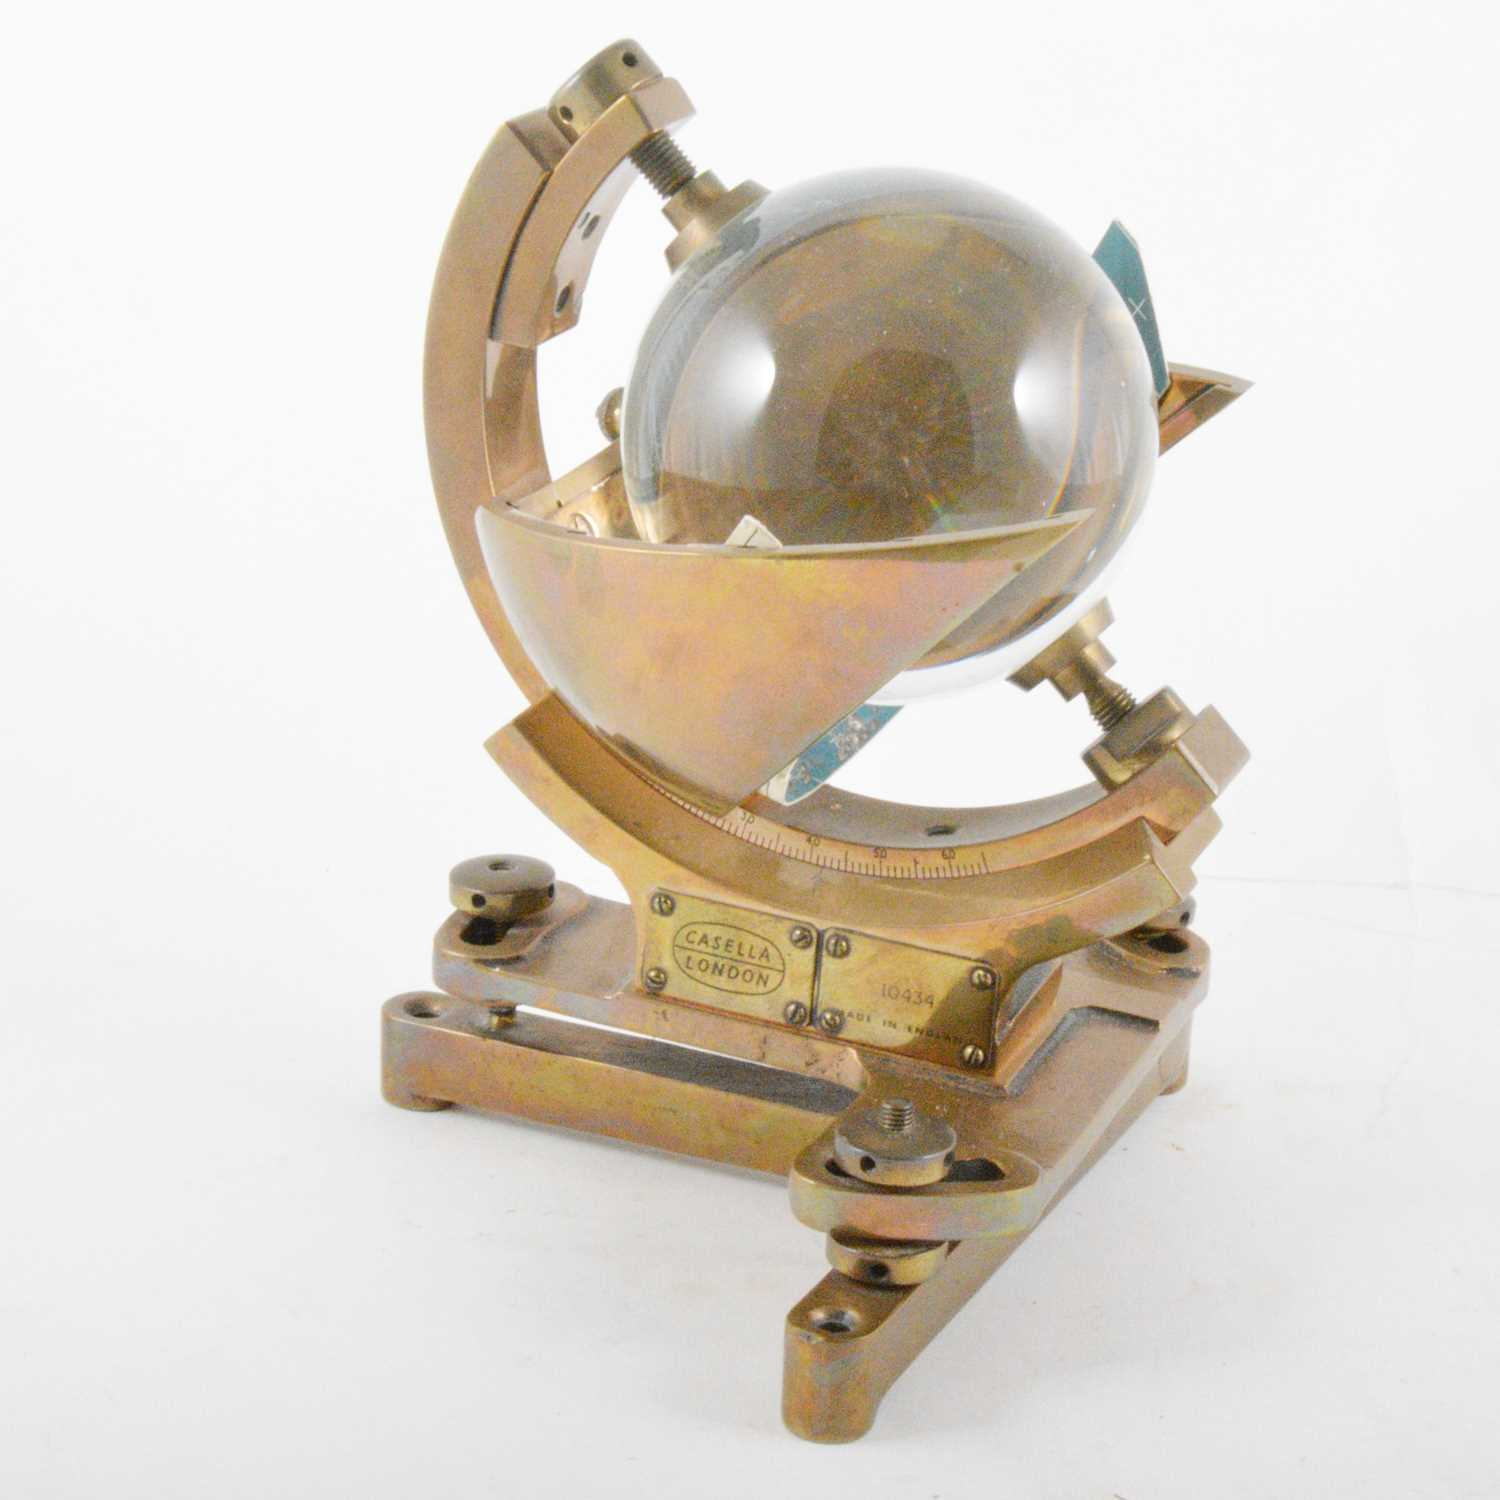 Lot 236 - A Campbell Stokes type Sunshine recorder, Casella, London